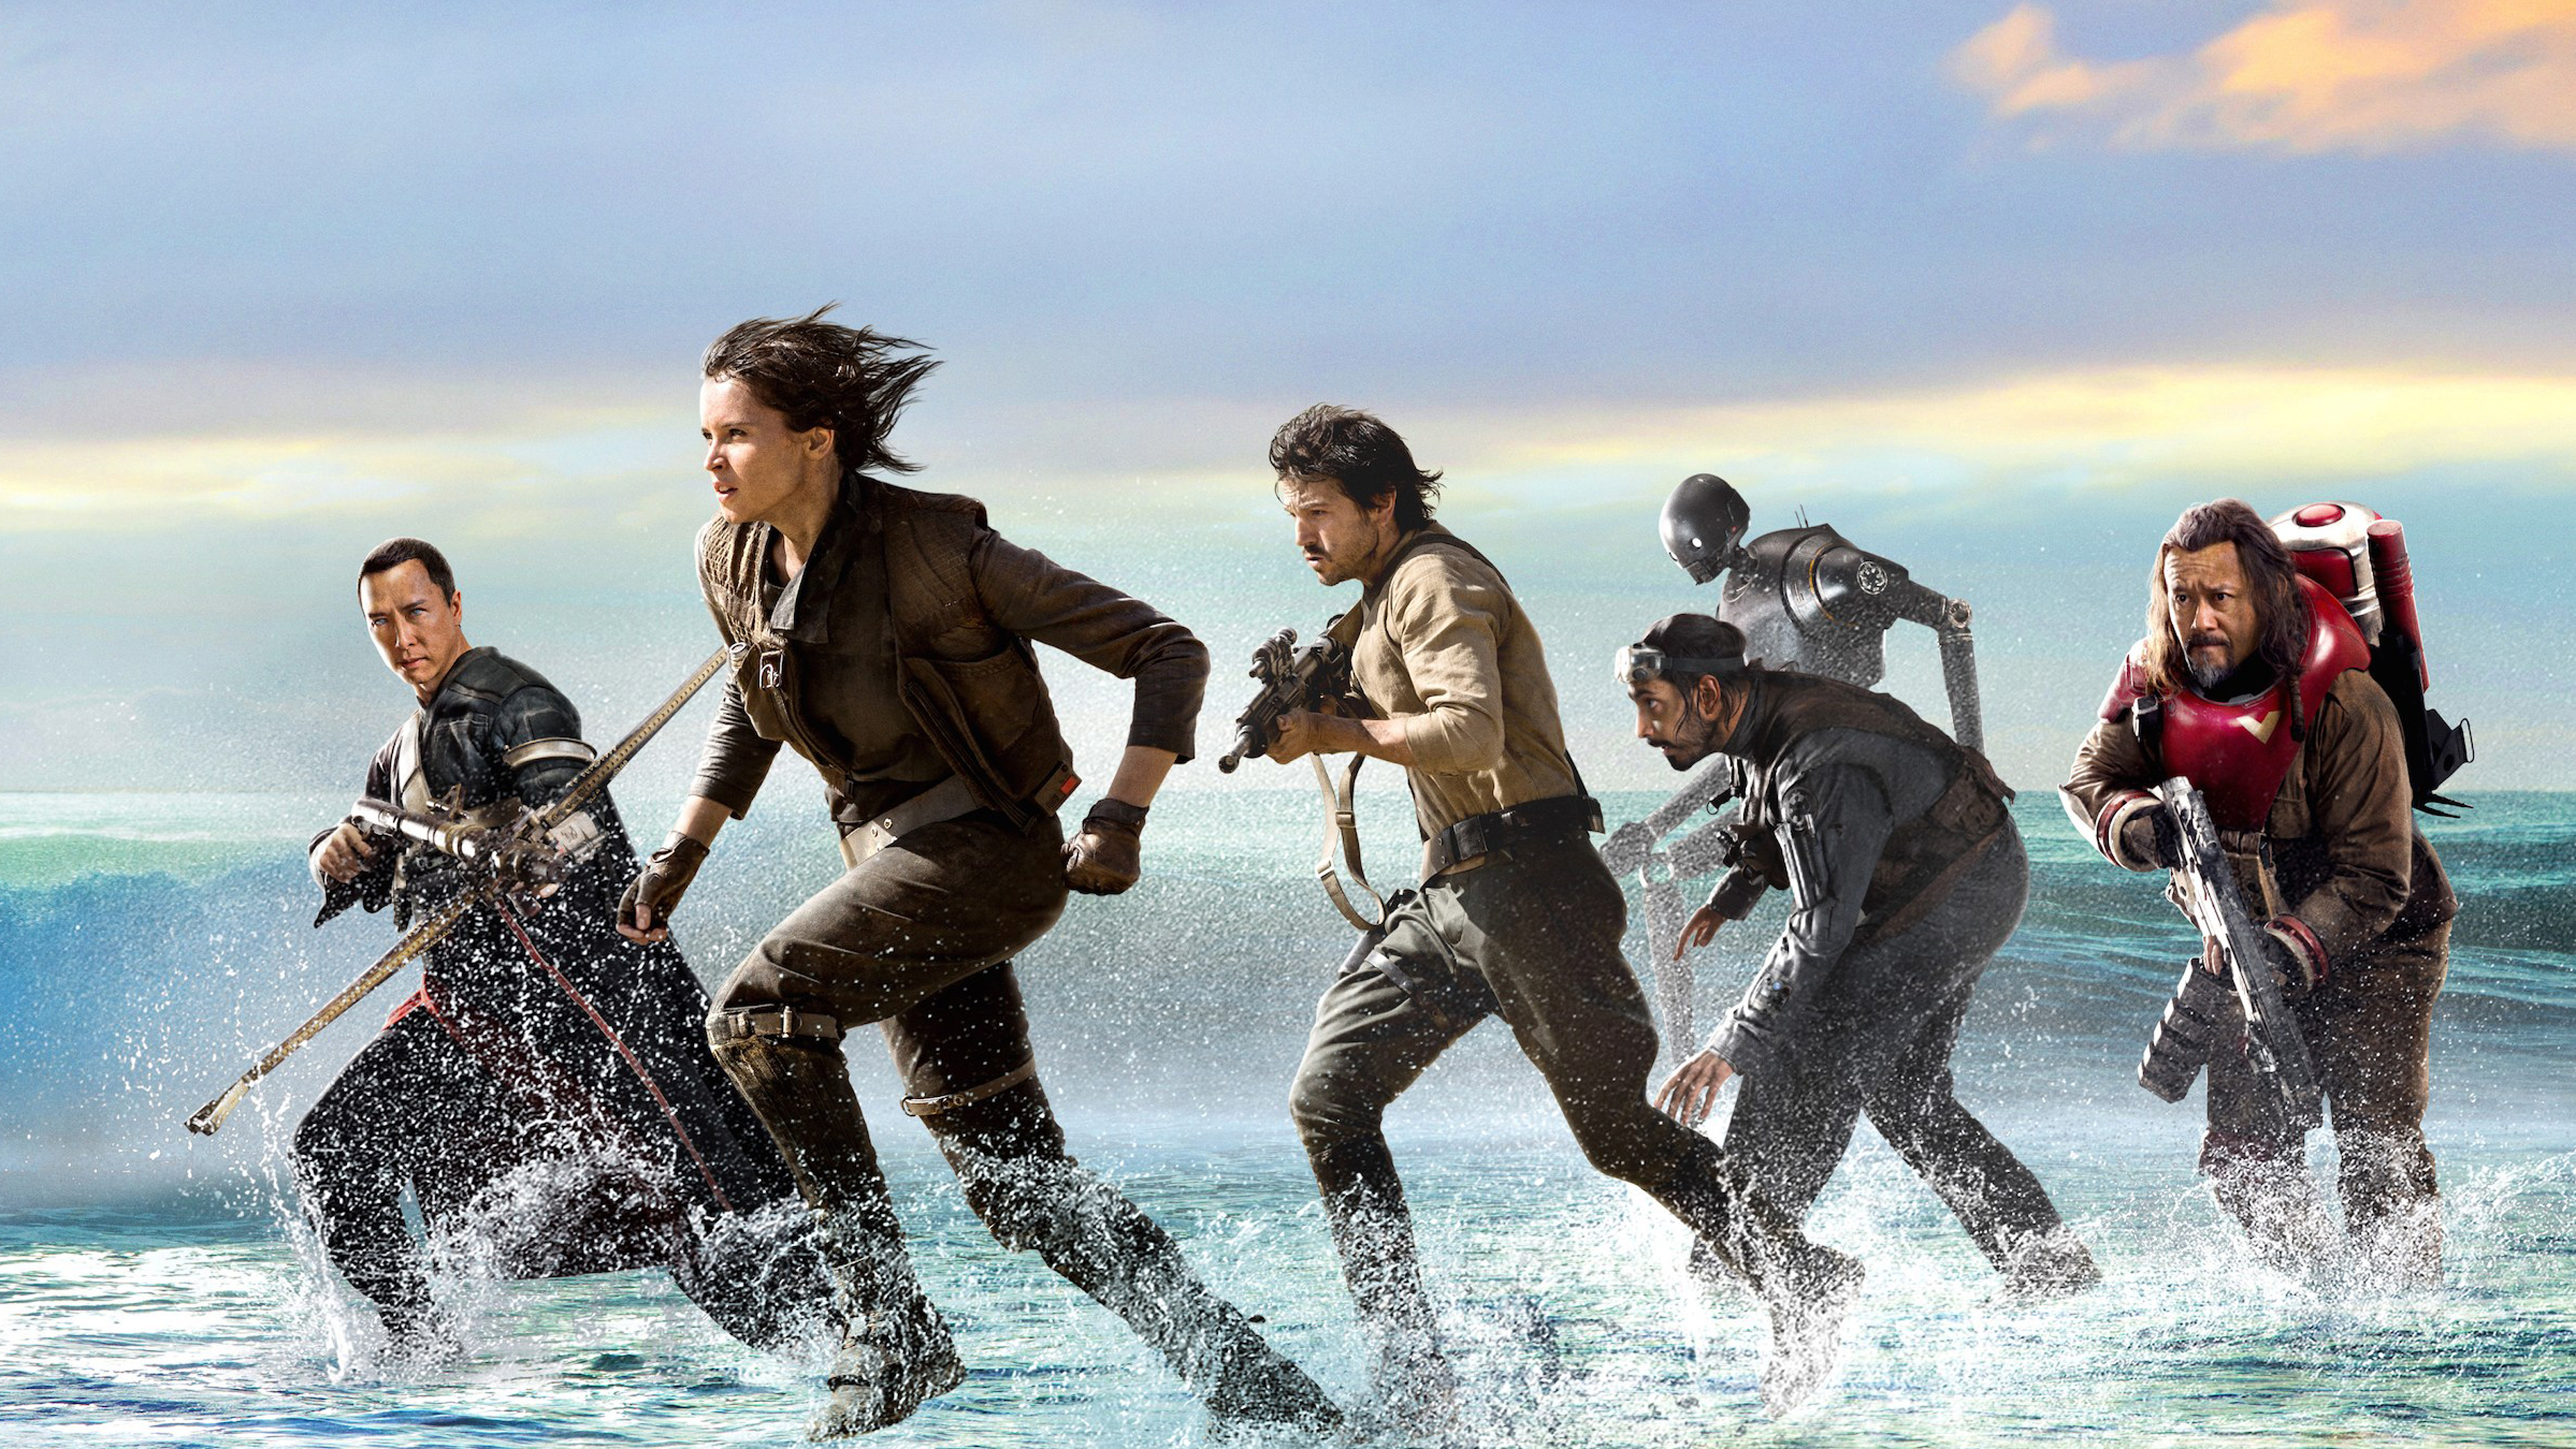 new rogue one a star wars story 4k 1536400515 - New Rogue One A Star Wars Story 4k - star wars wallpapers, rogue one a star wars story wallpapers, movies wallpapers, 4k-wallpapers, 2016 movies wallpapers